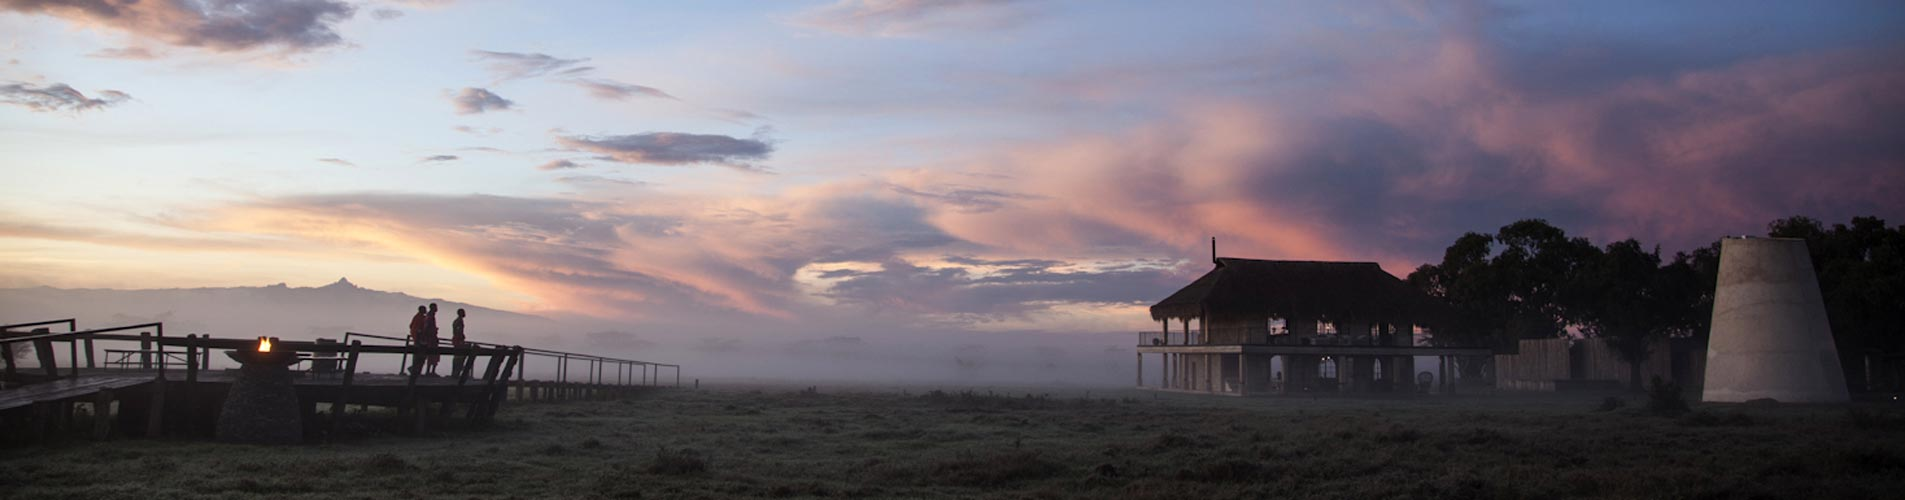 Segera Camp in Kenya At Dawn